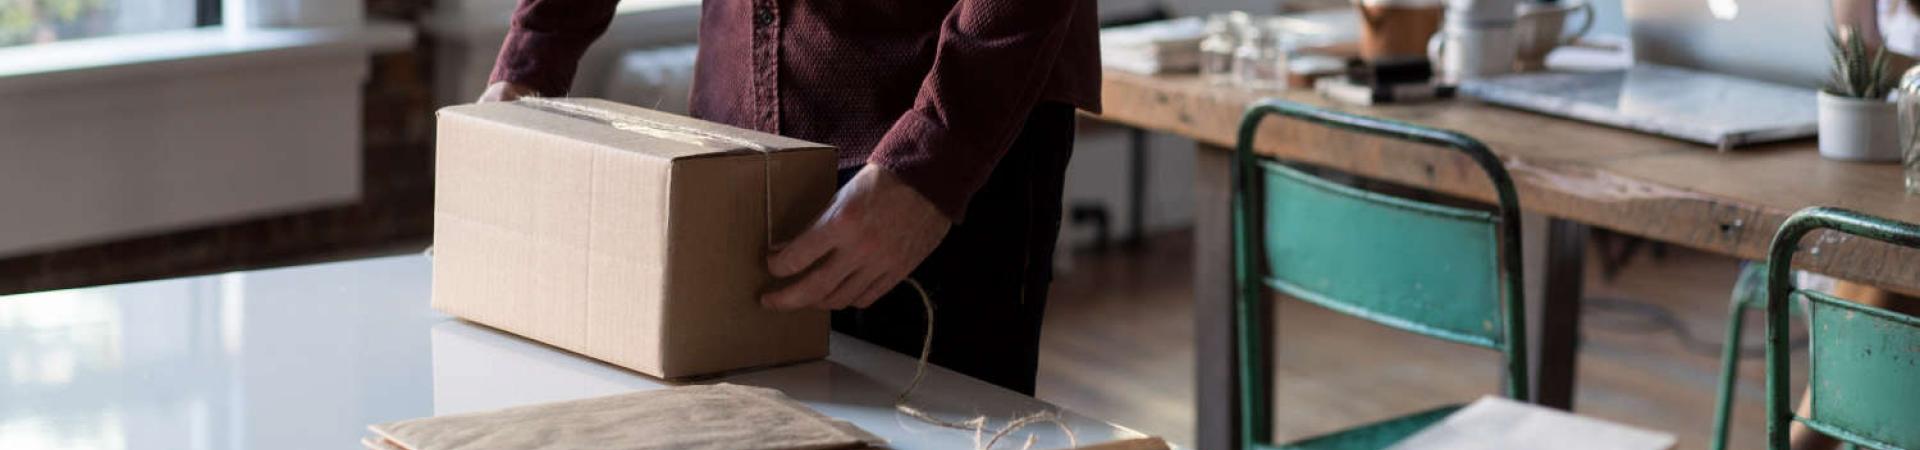 Man in an office preparing brown envelopes and cardboard box for shipping